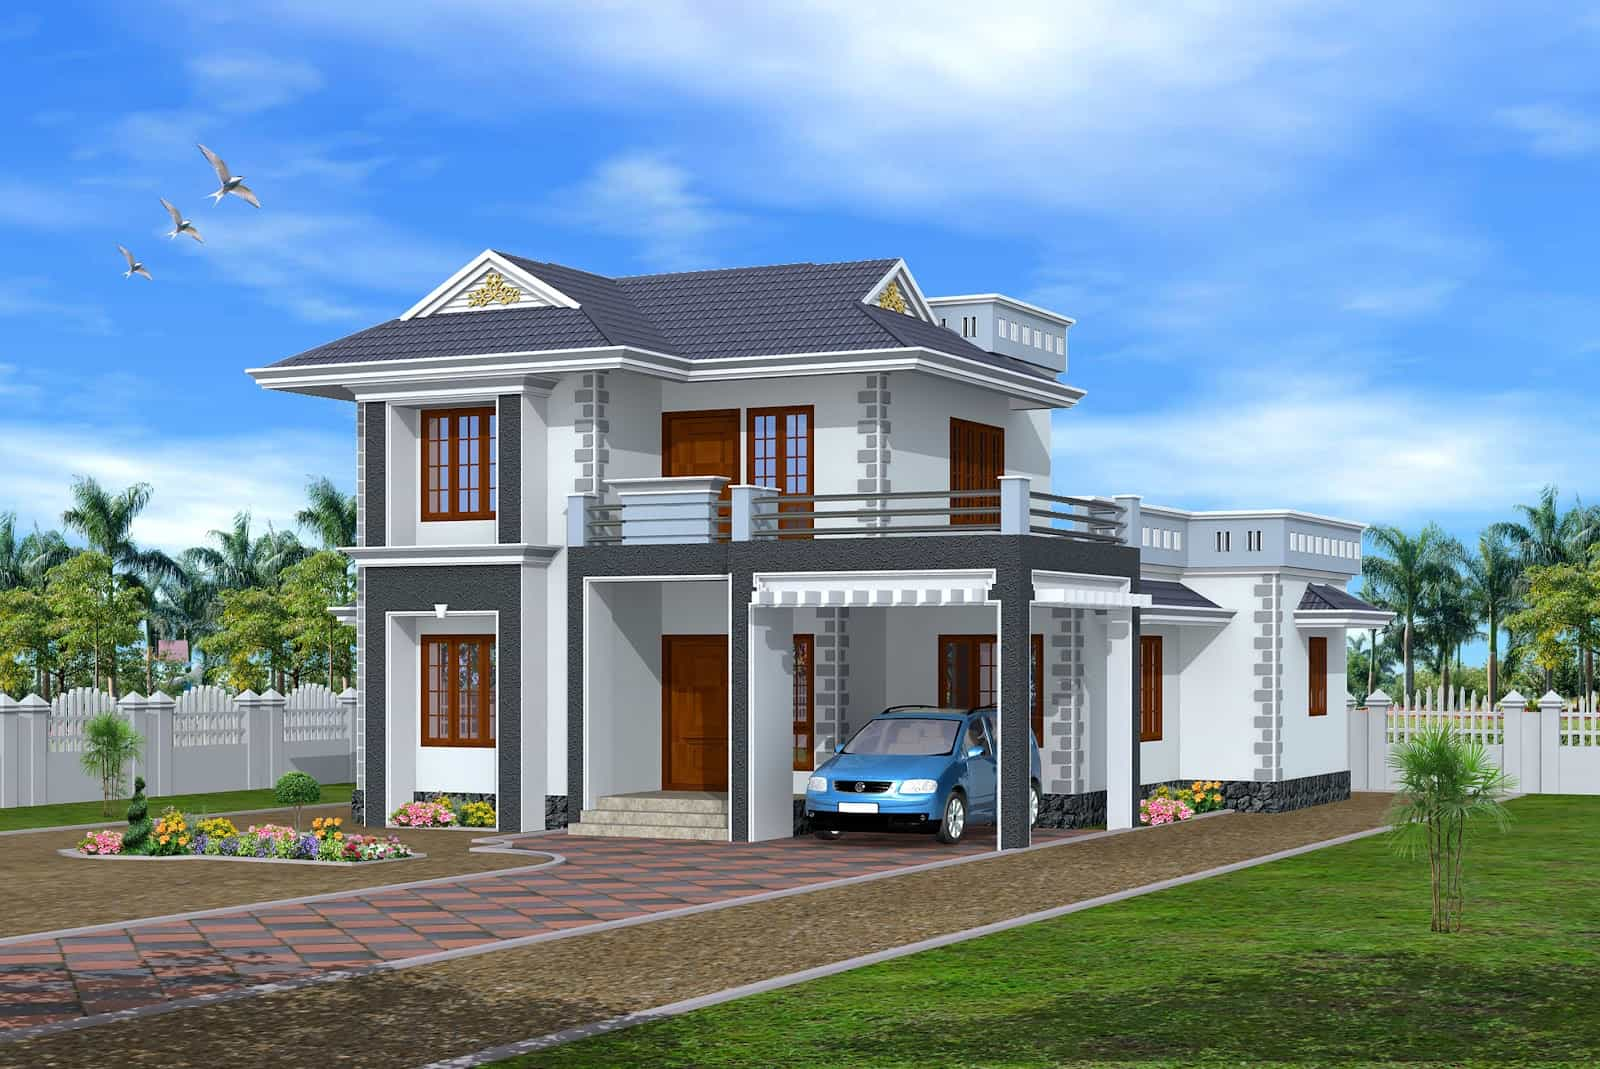 3 bedroom 3d exterior house design at 1845 sq ft